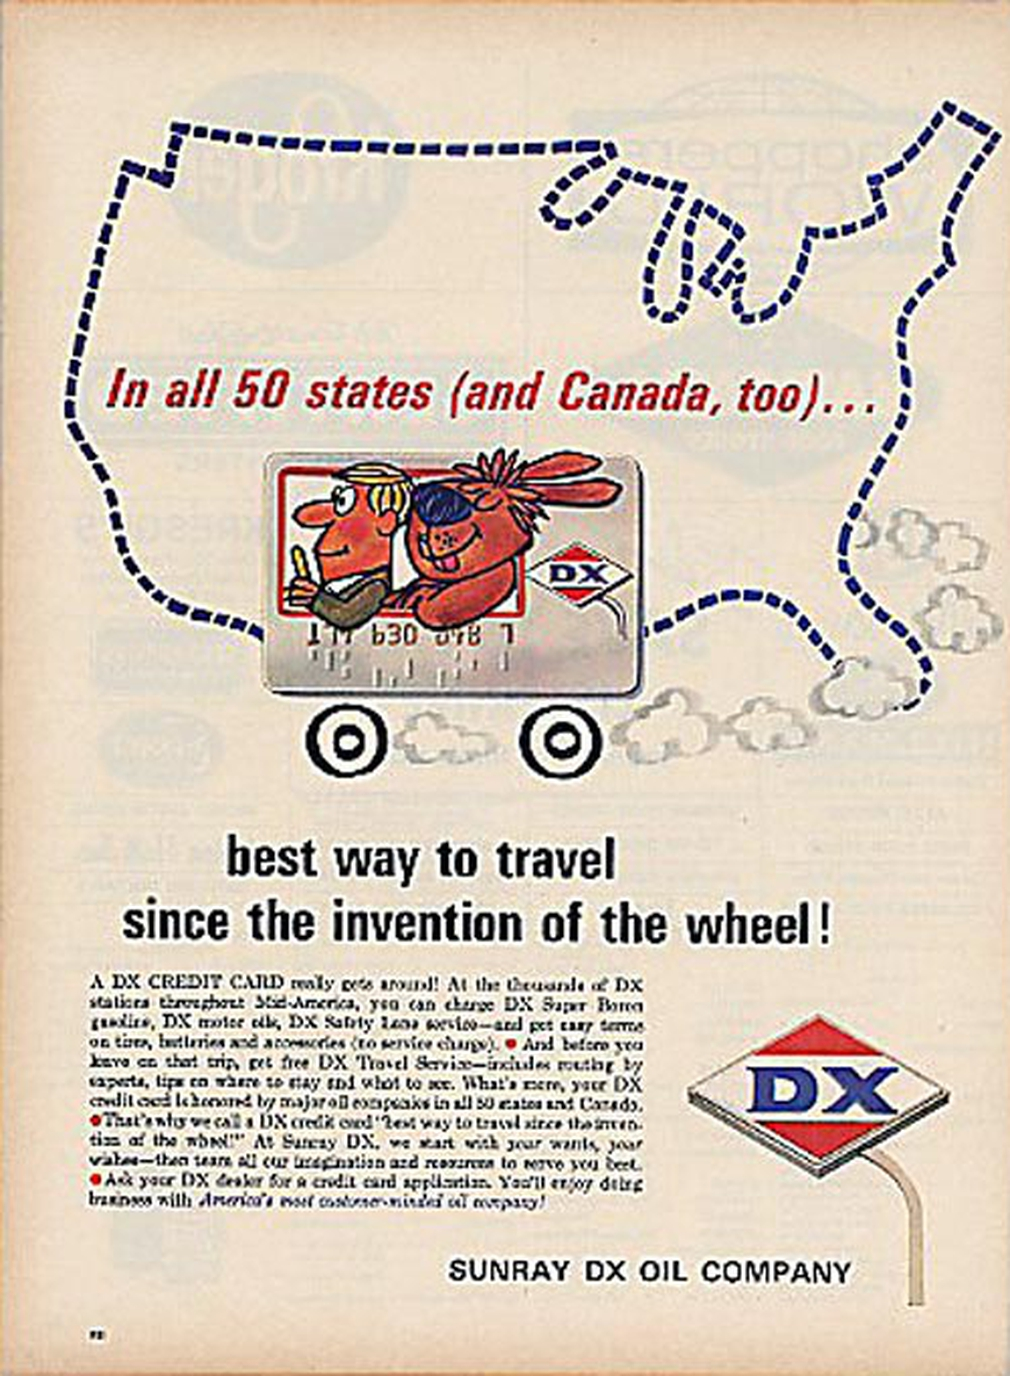 DX vintage credit card ad